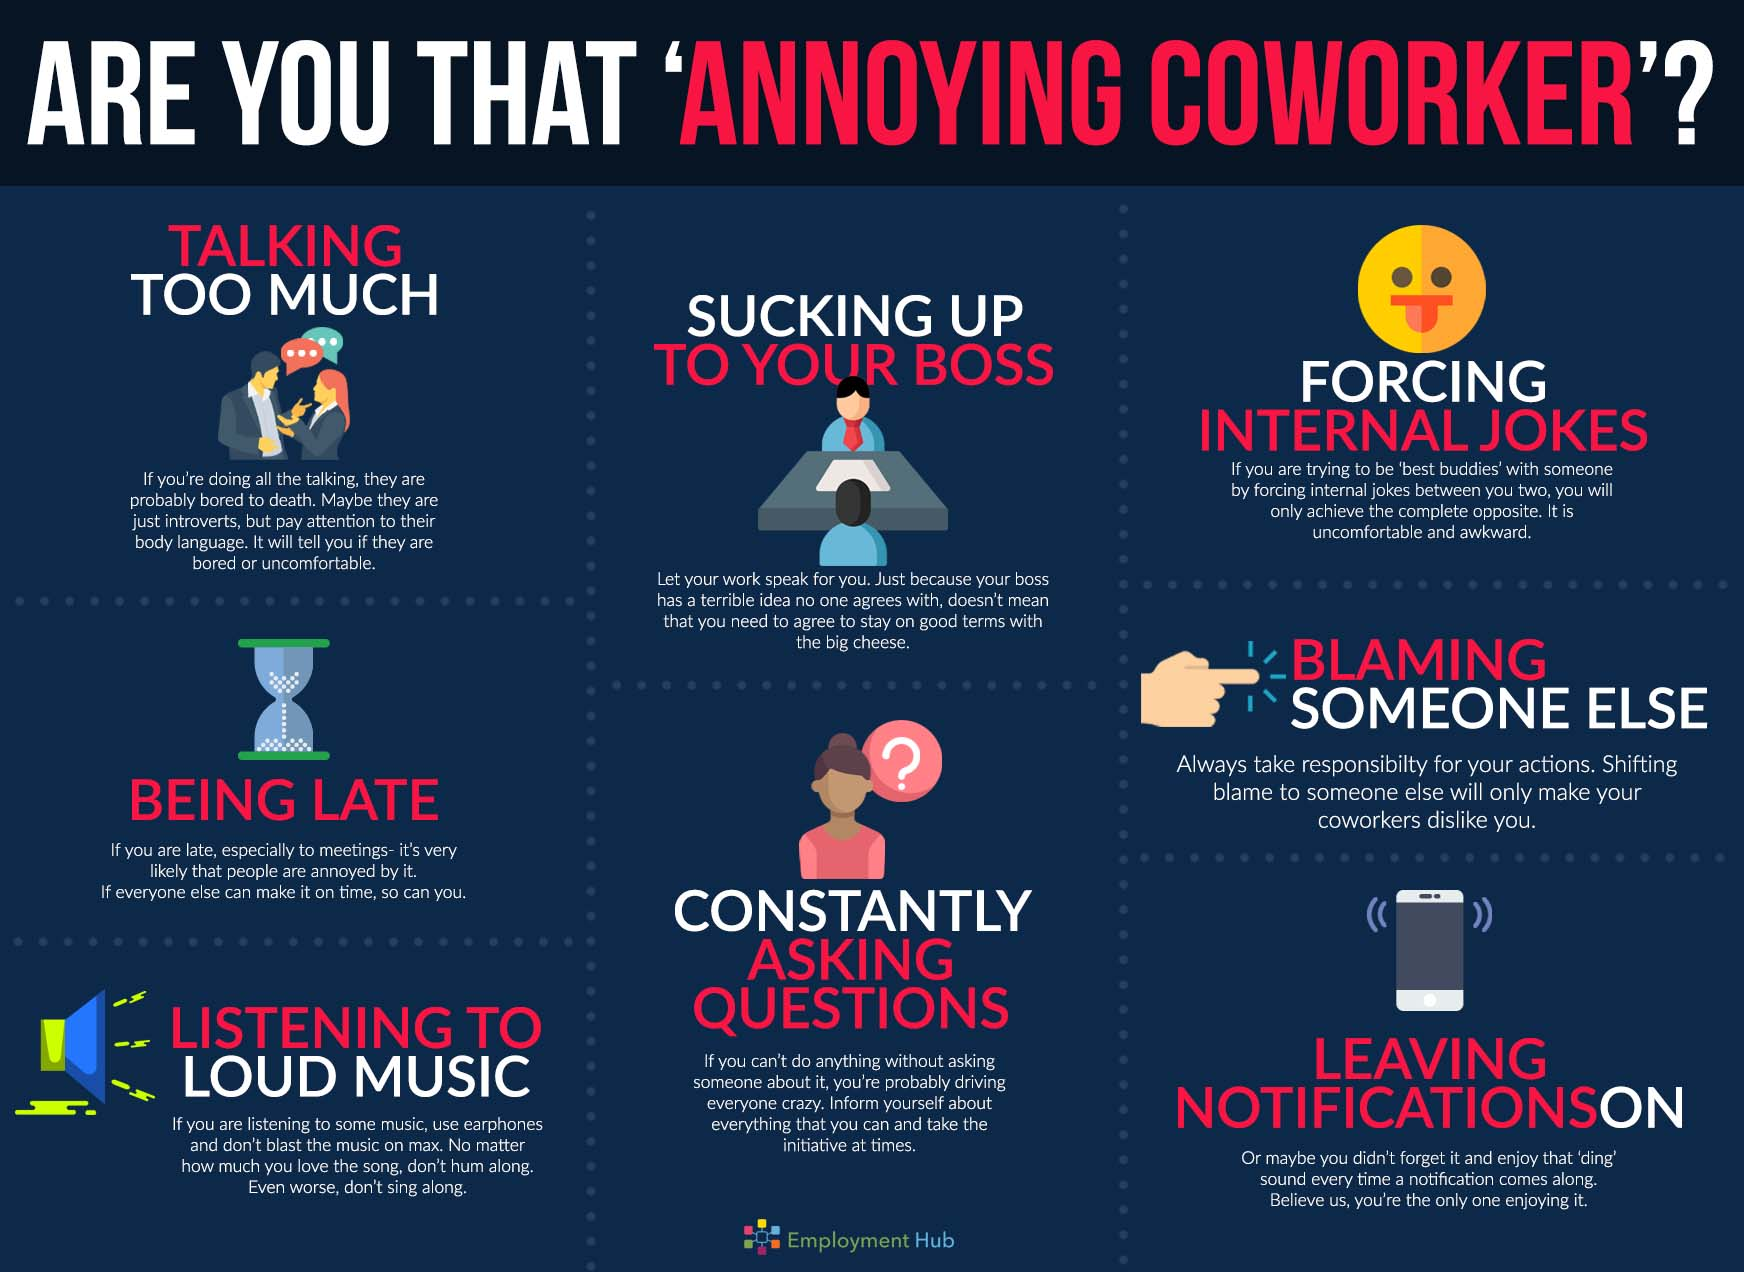 are-you-annoying-coworker